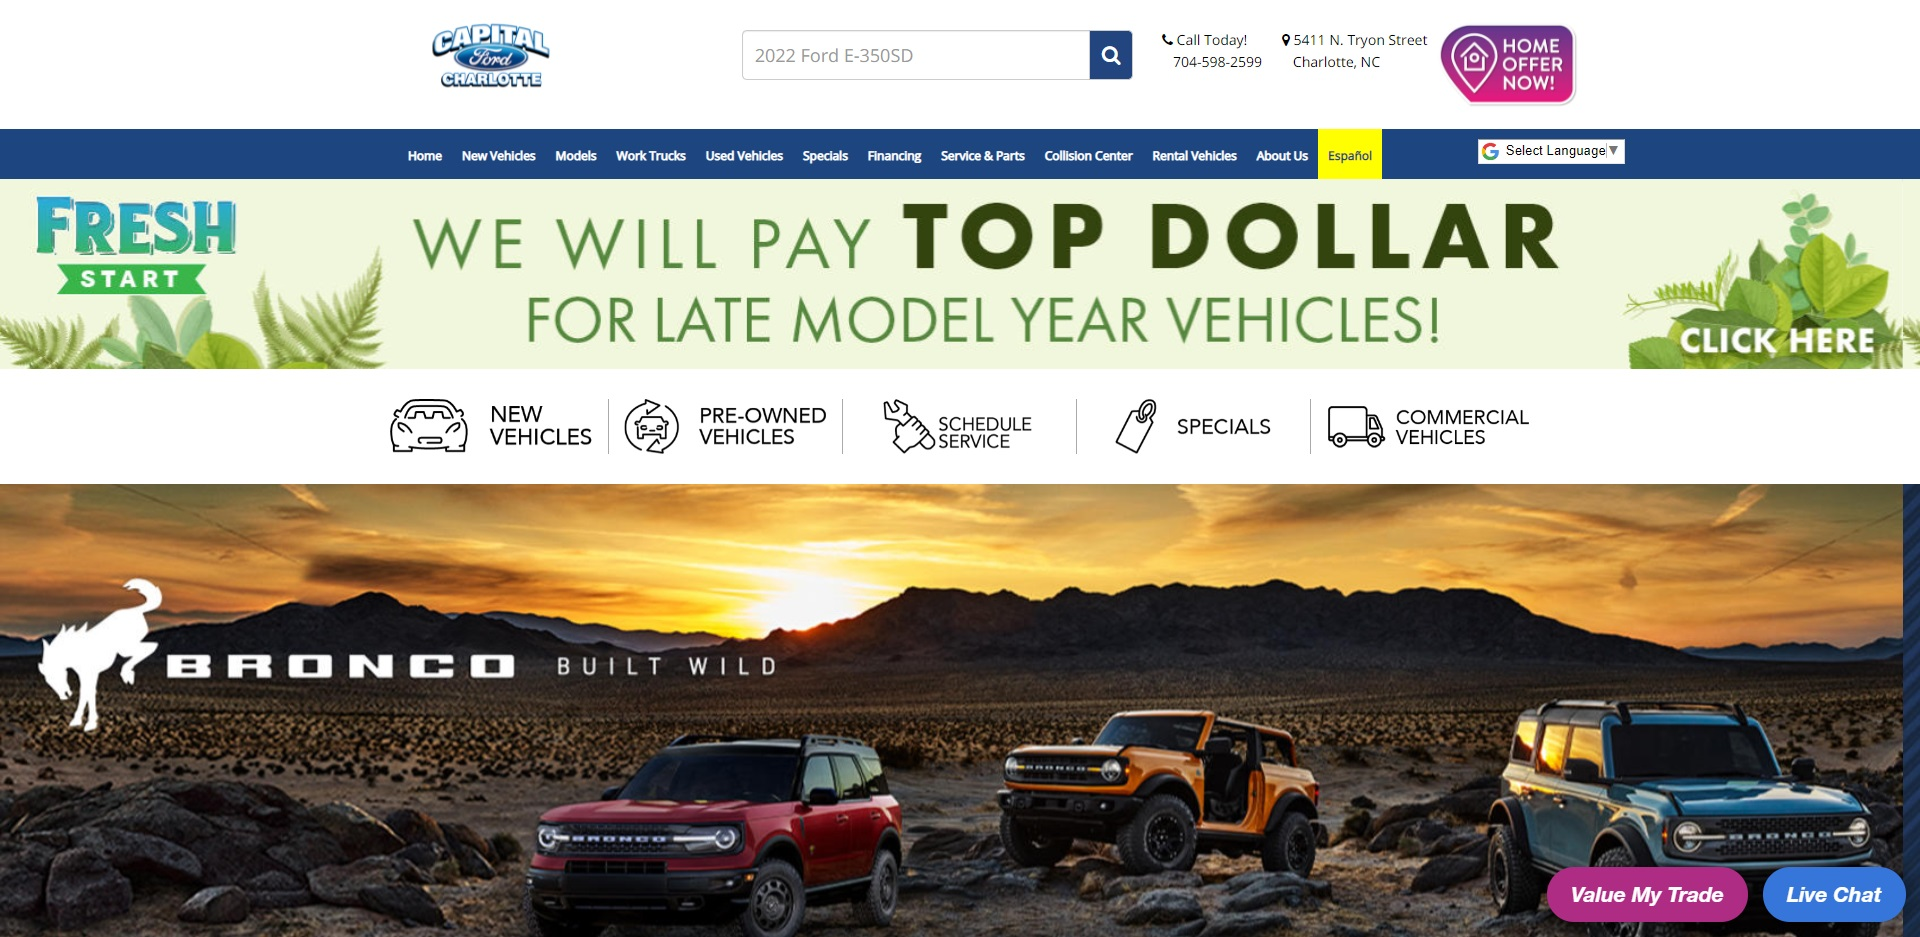 Best Ford Dealers in Charlotte